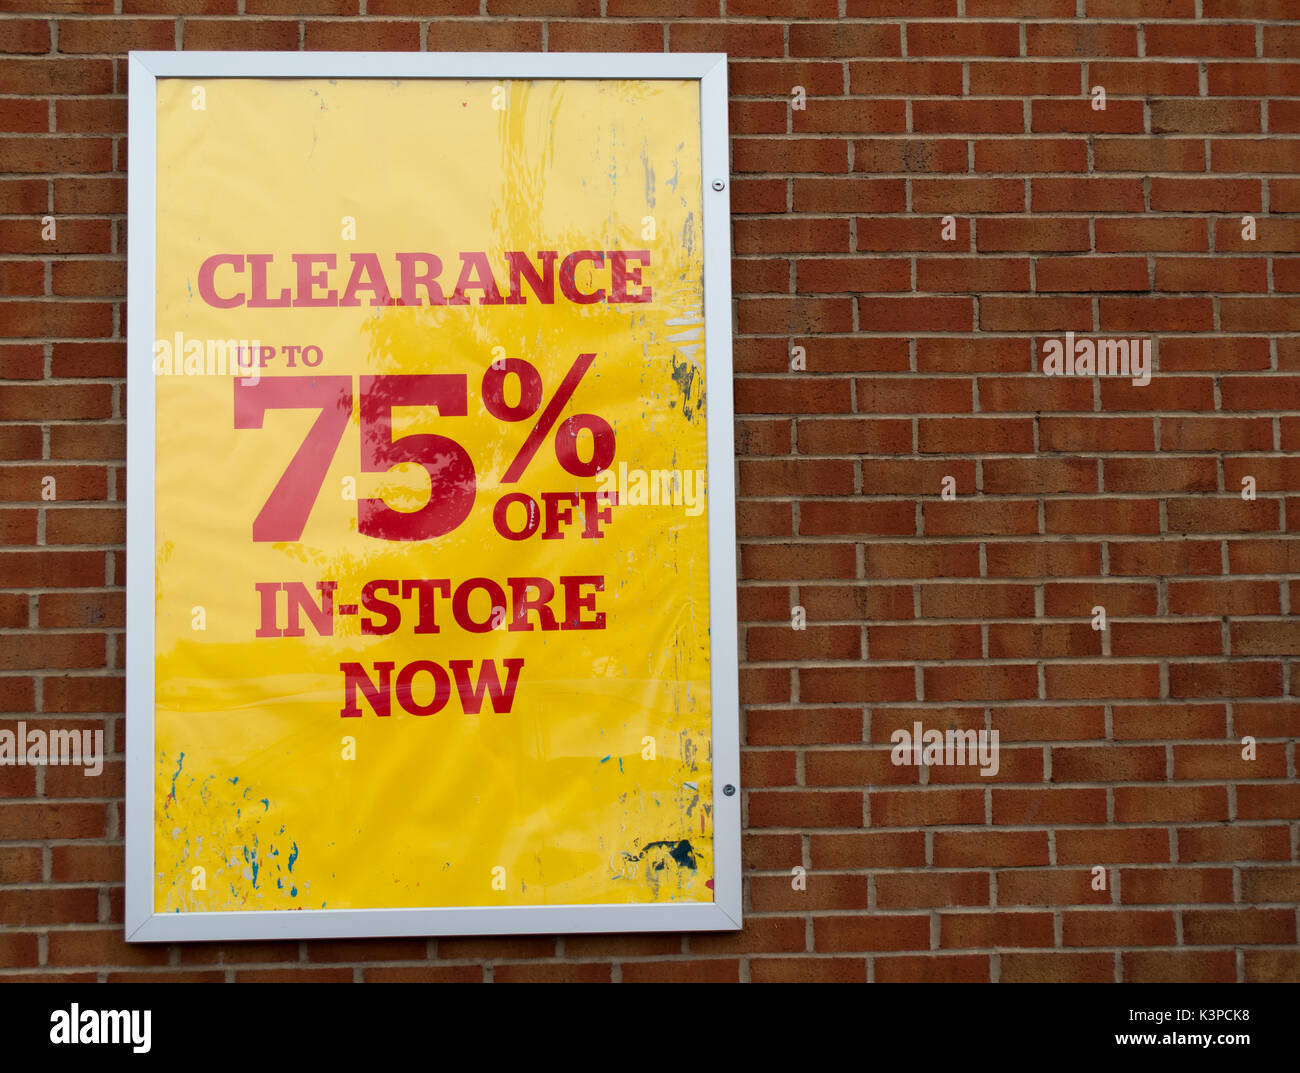 75 percent off in store now retail store clearance sale sign mounted on brick wall - Stock Image